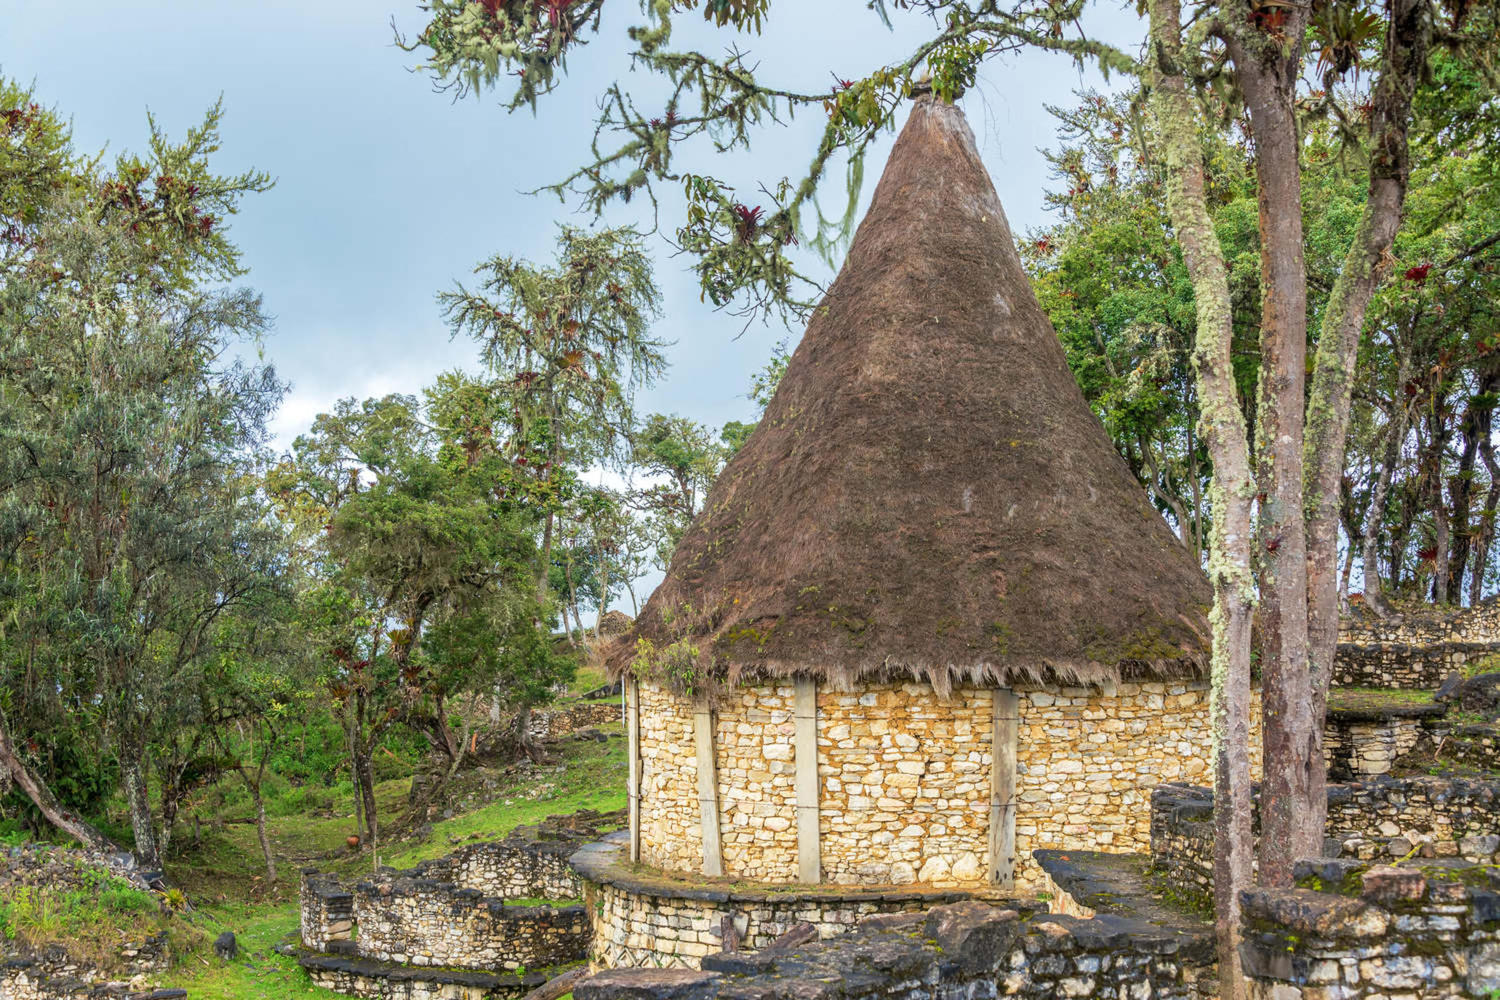 peru-chachapoyas-ancient-house-with-a-thatch-roof-in-the-ruins-of-kuelap-peru